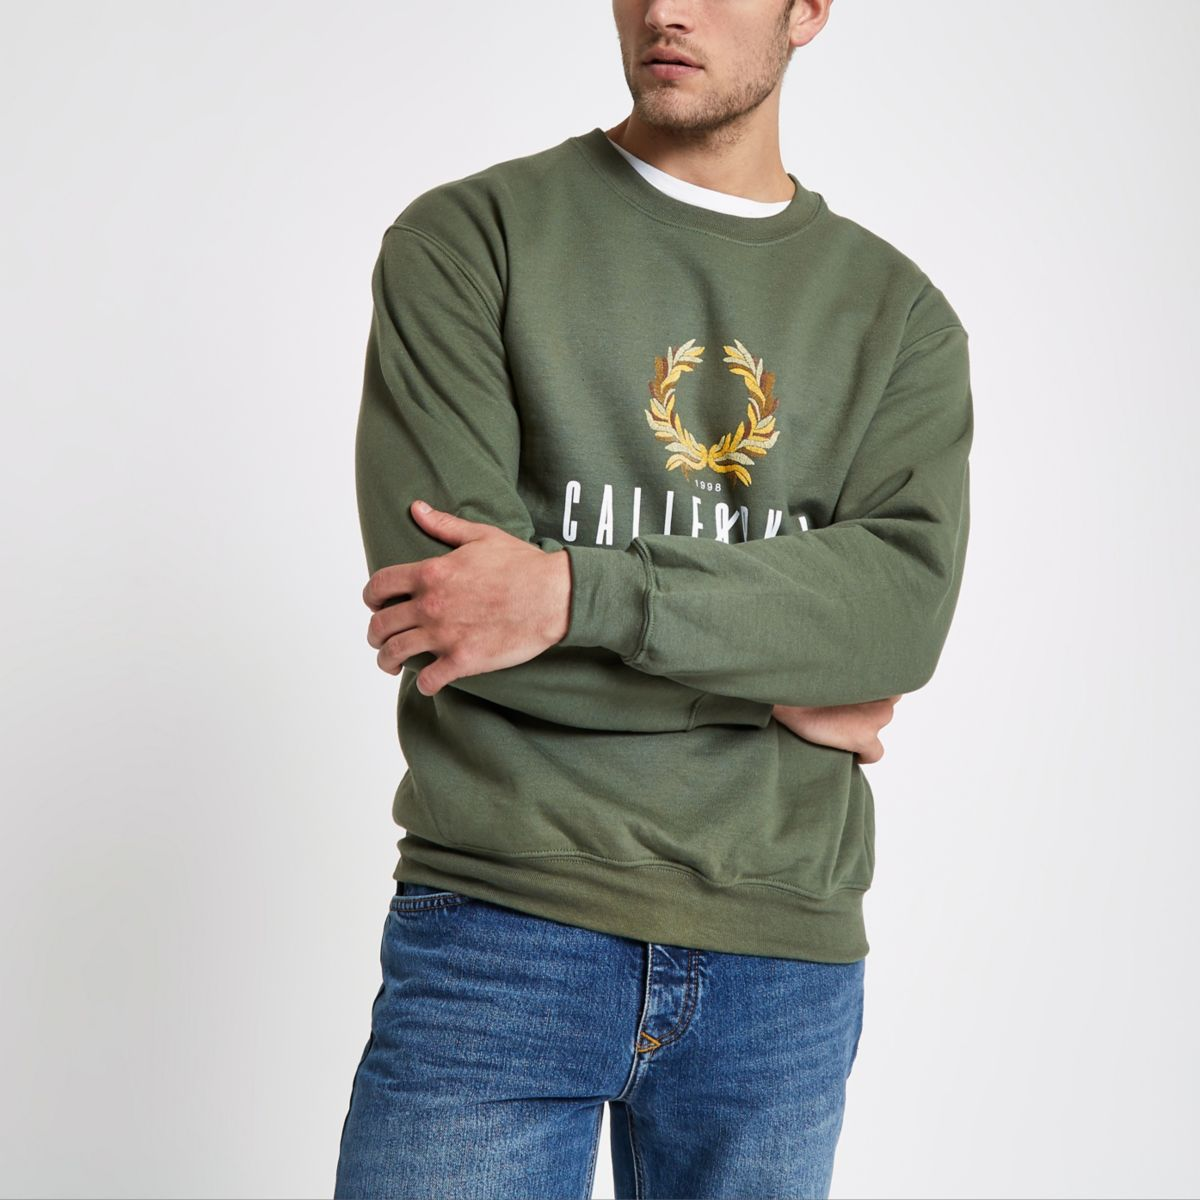 Dark green California reef sweatshirt